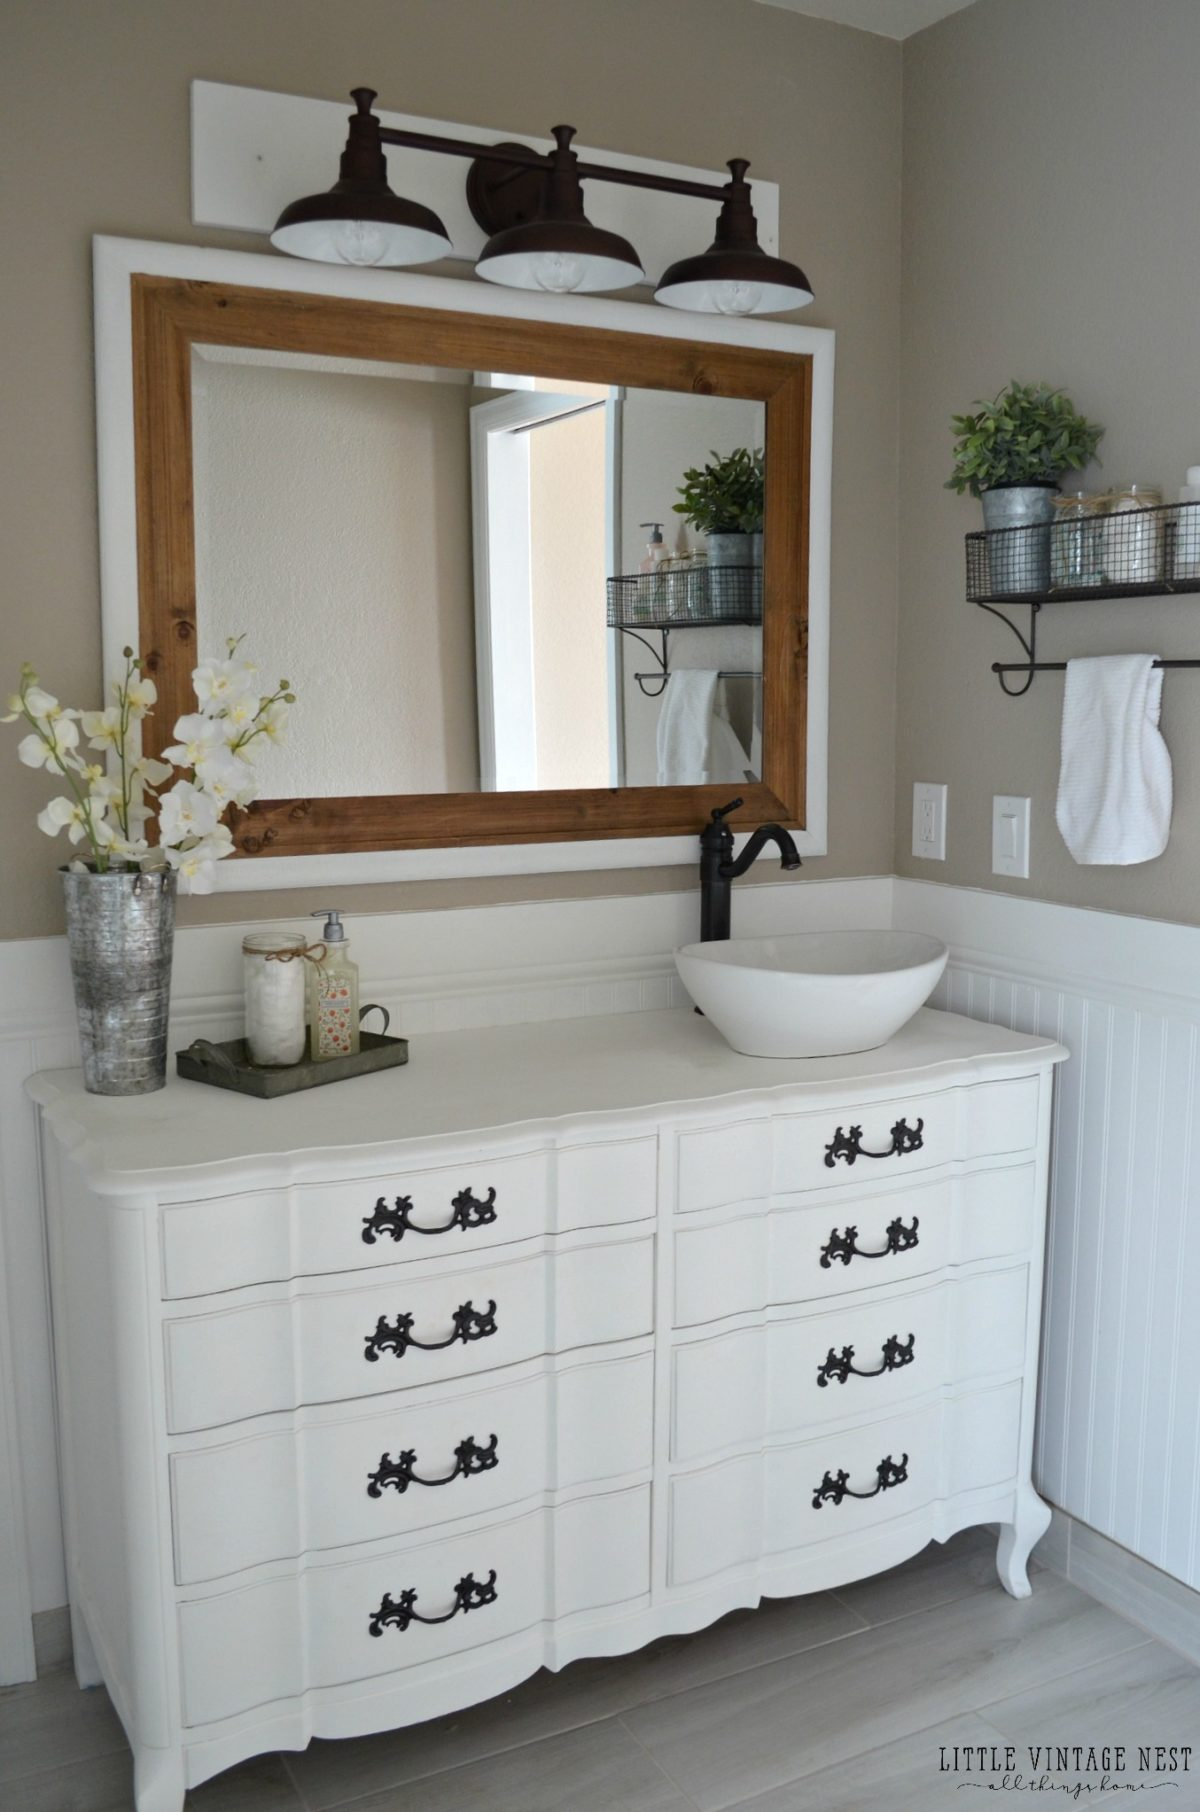 Bhg style spotters for Bathroom decor styles